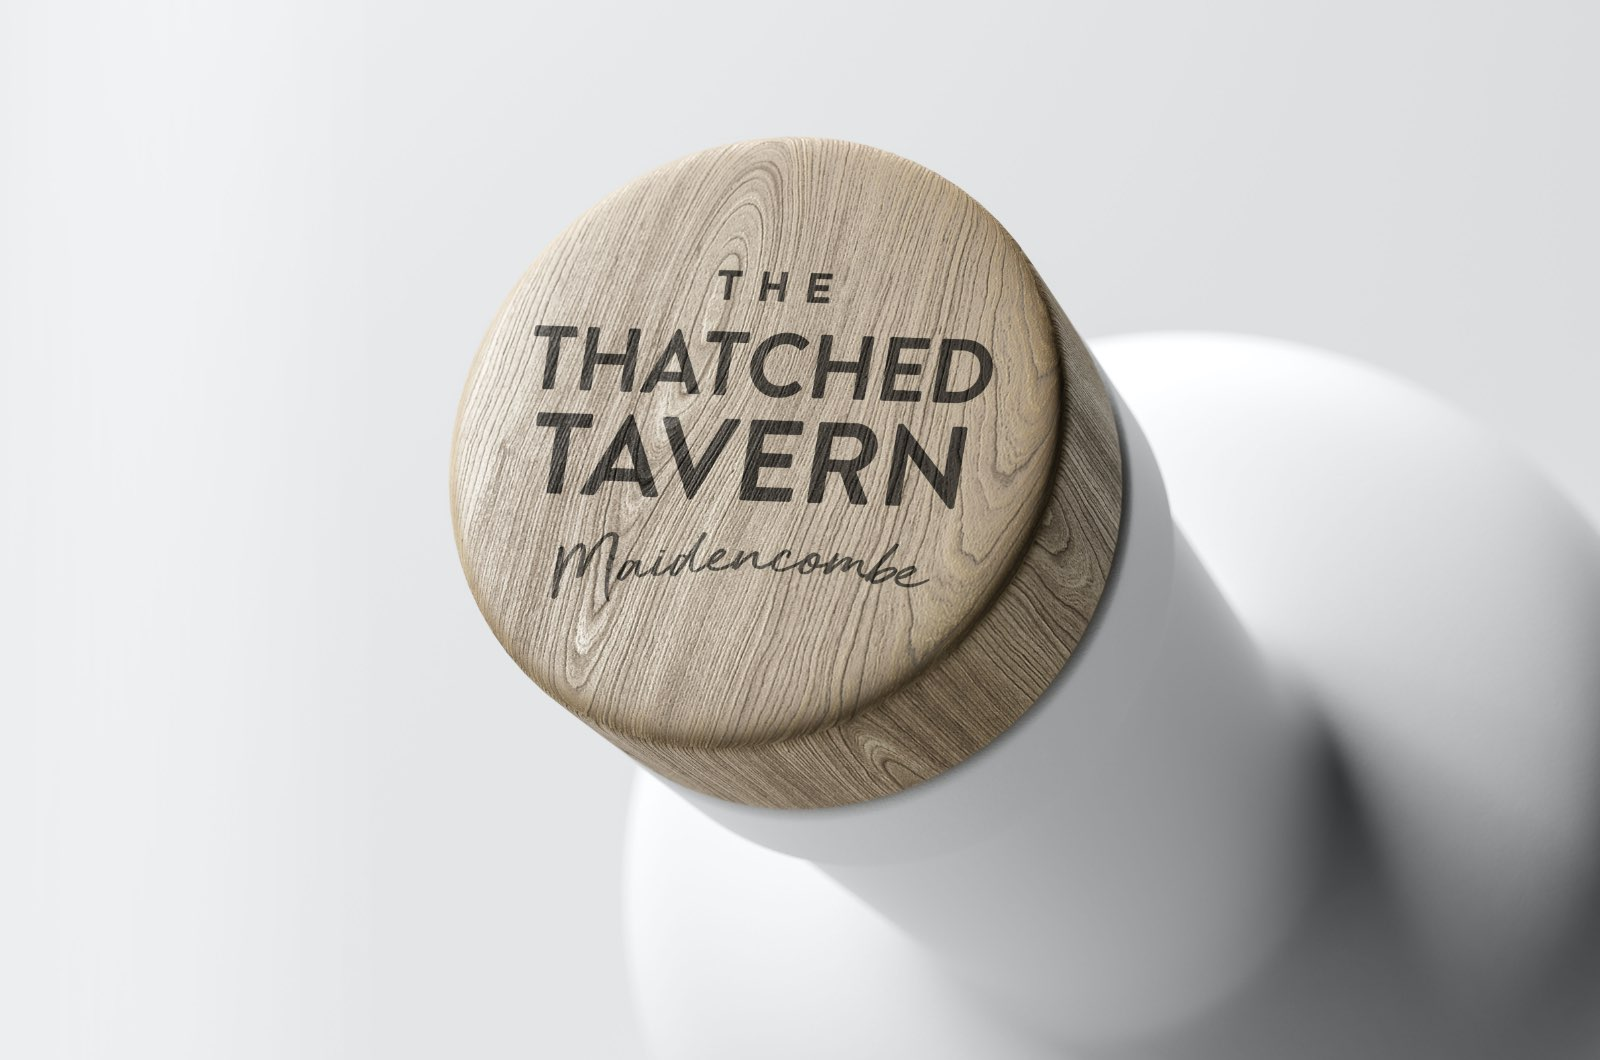 The Thatched Tavern, Maidencombe